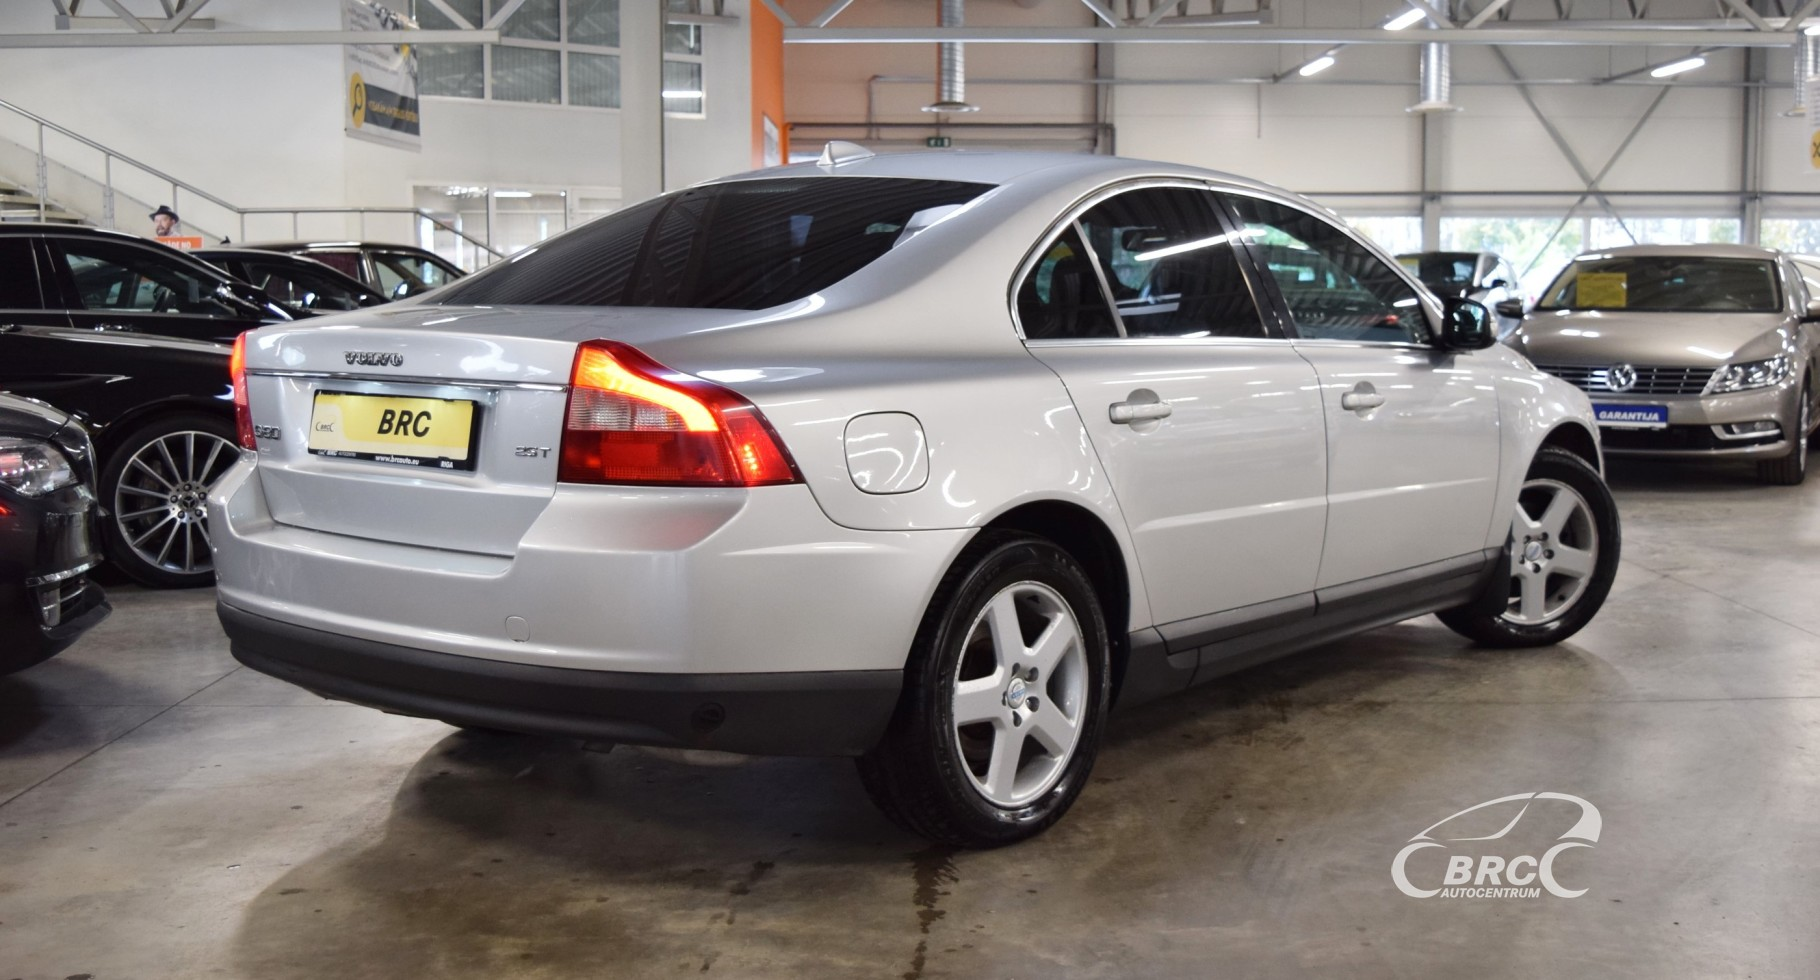 Volvo S80 Kinetic A/T